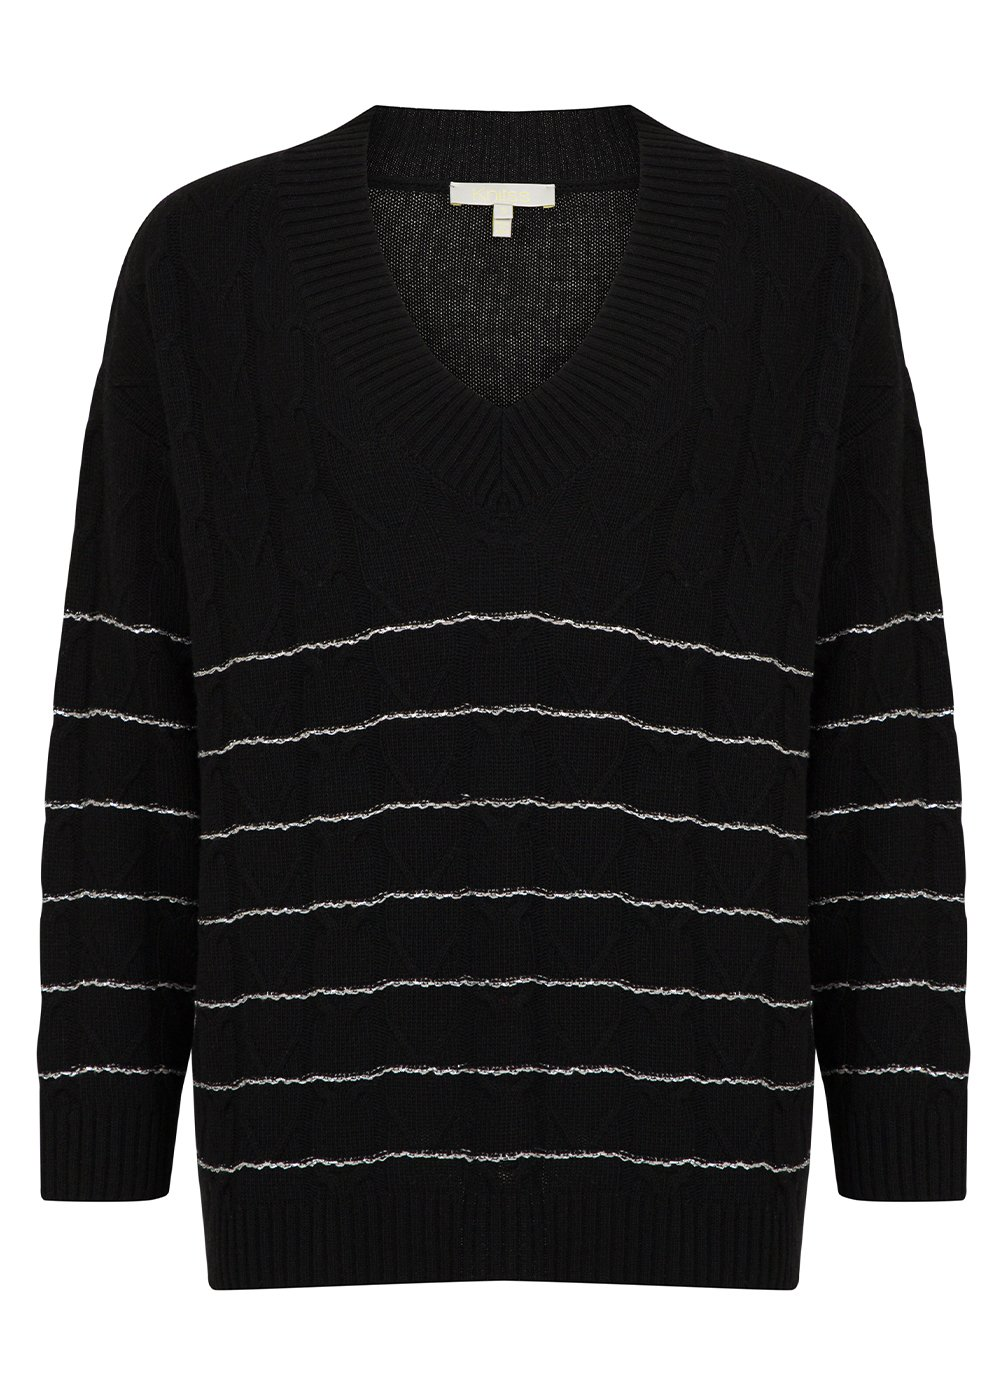 Loose Fit Wool Cashmere Blend Cable Knit Black Sweater